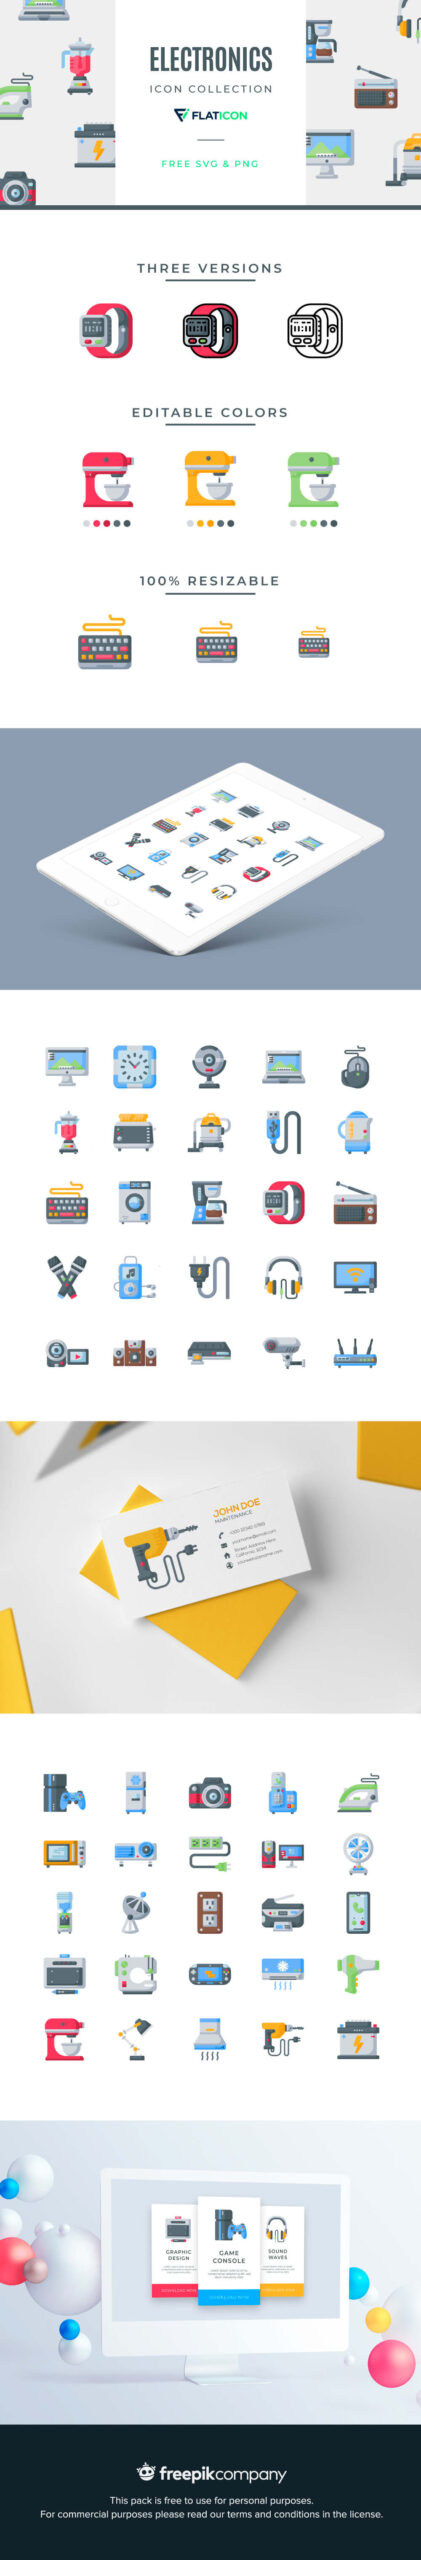 Free Didactic Electronics Vector Icons